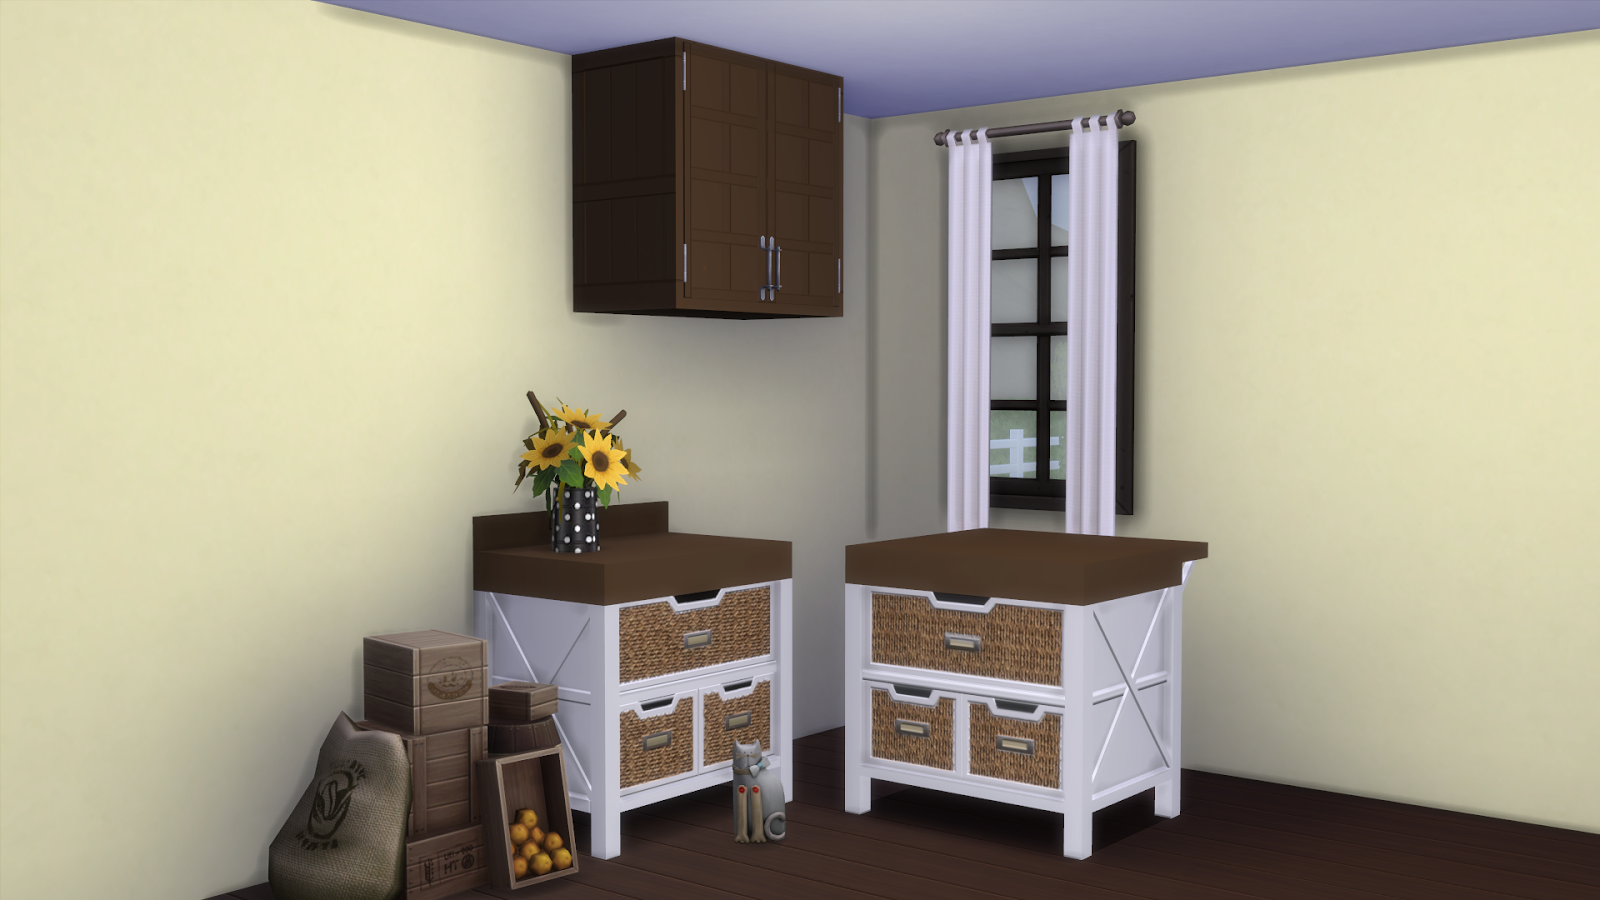 Sims Kitchen Kyms Creations Vault Modular Kitchen Recolor With Wicker Baskets